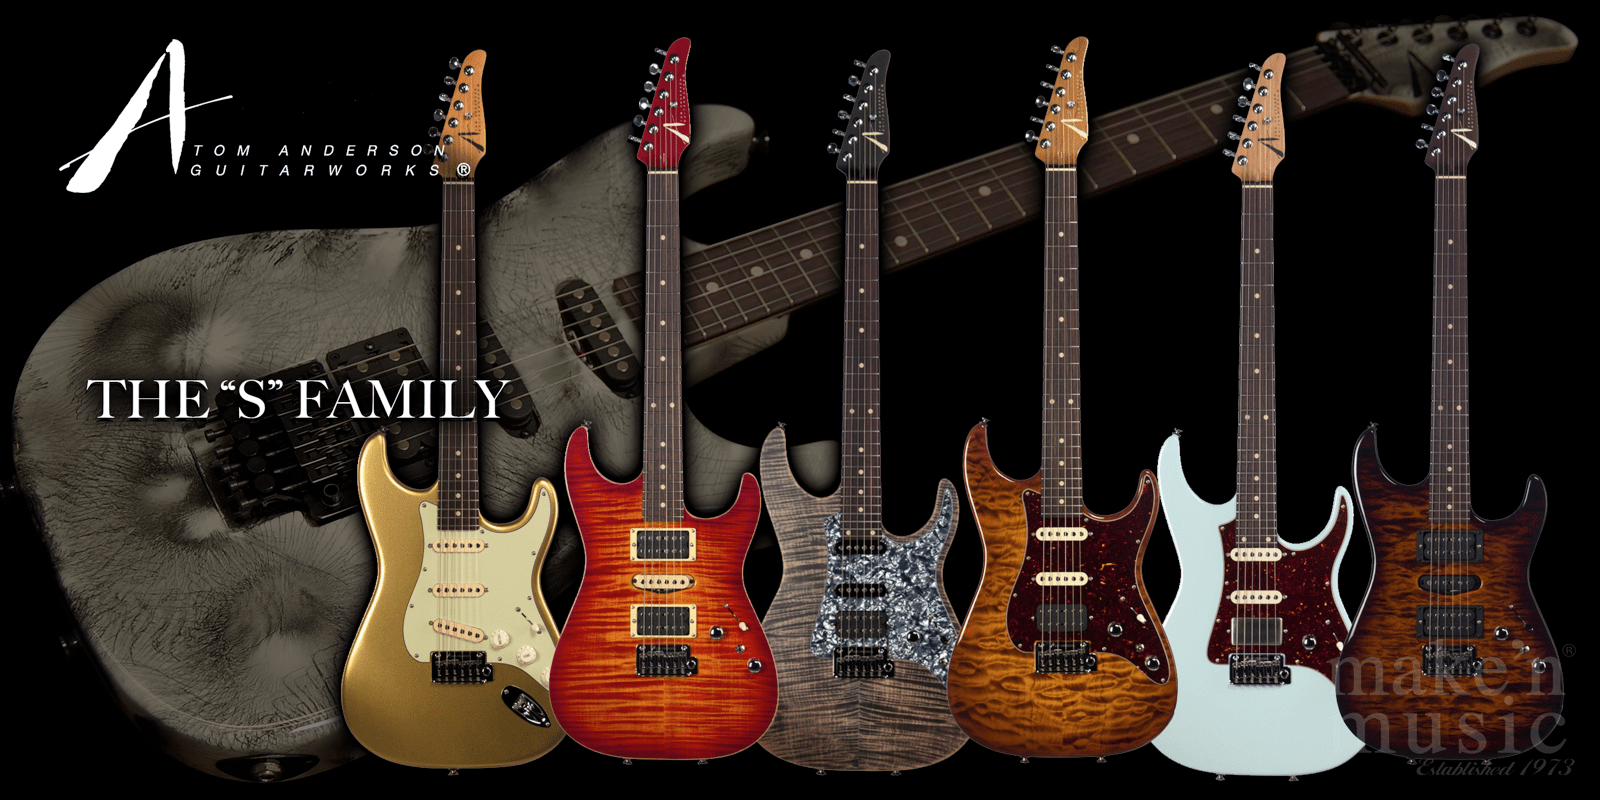 Tom Anderson S Family Guitars